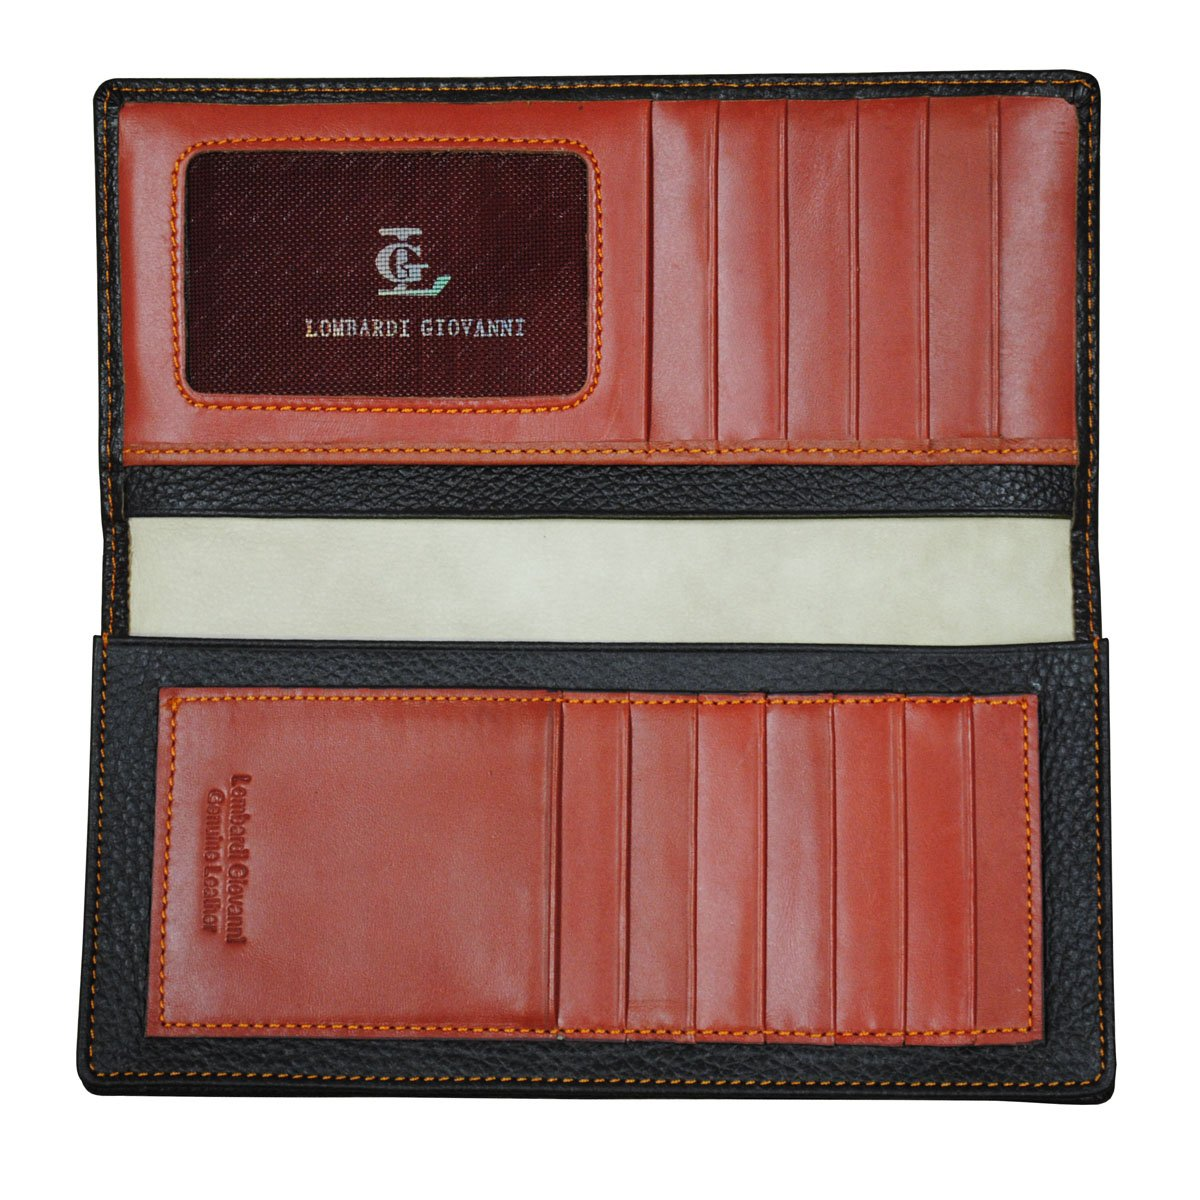 37bae061011d Lombardi Giovanni Men's Leather Long Wallet 12 Slots 1 Window ID And ...